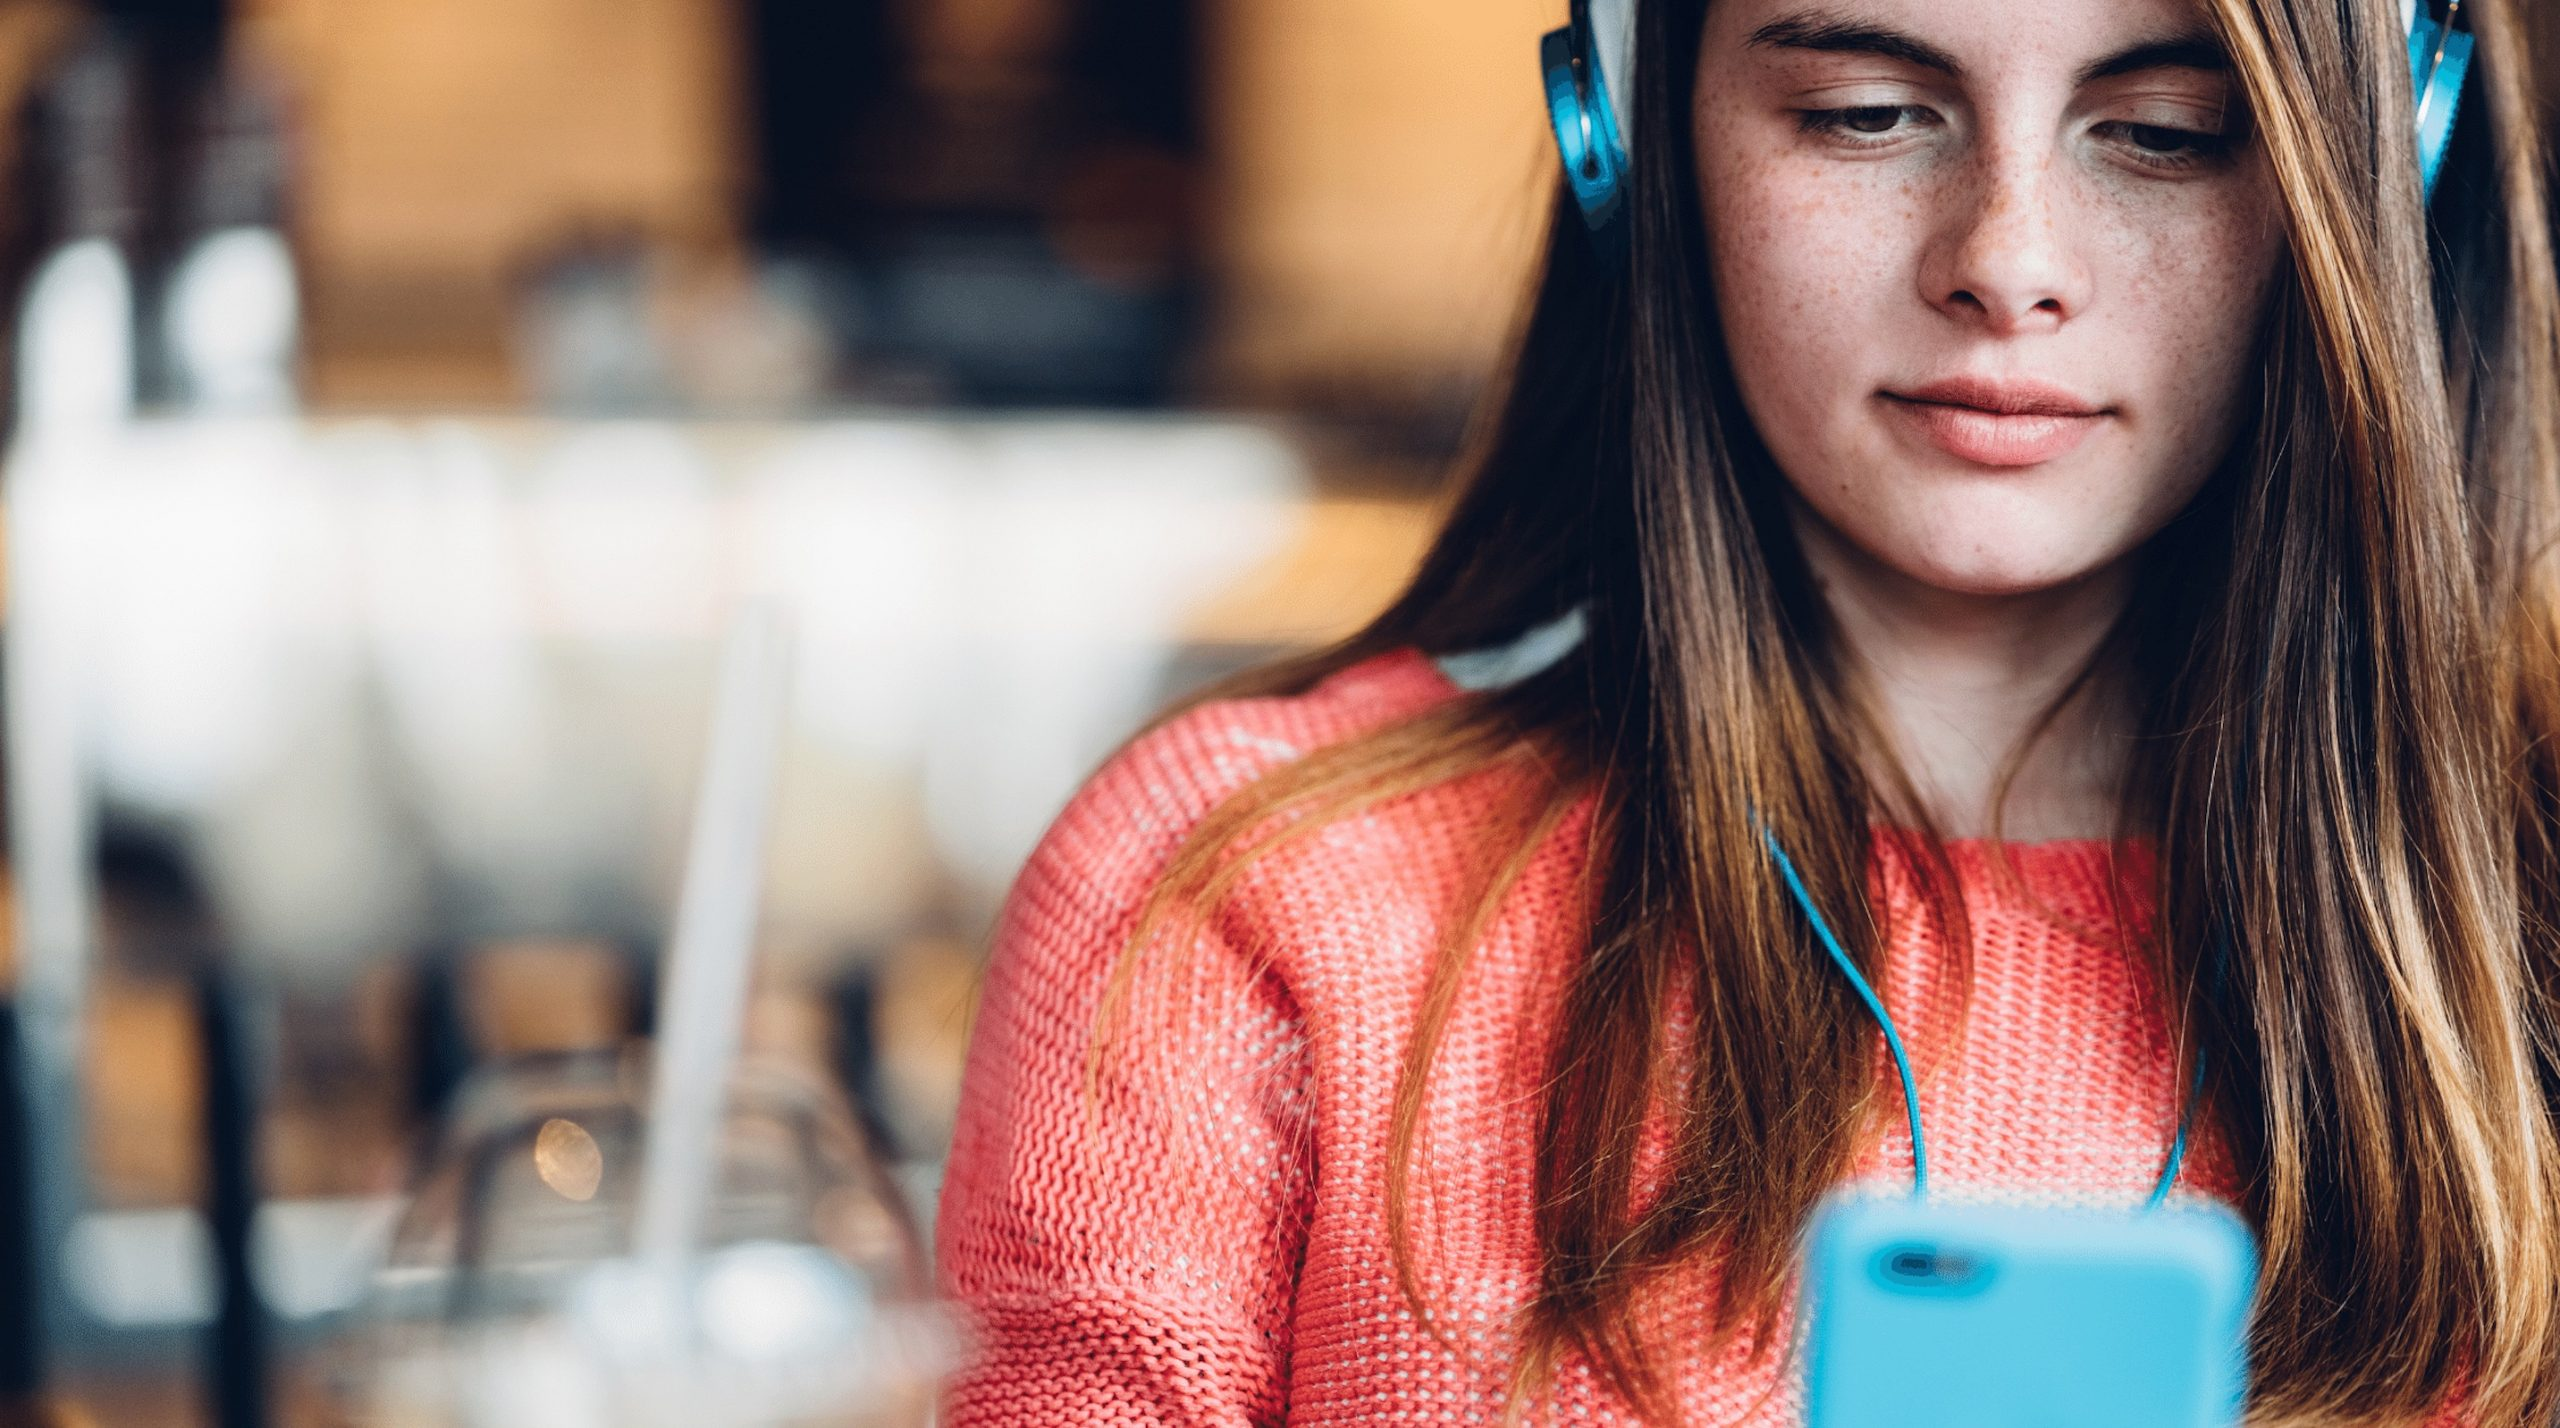 10 Best Mental Health Podcasts to Listen